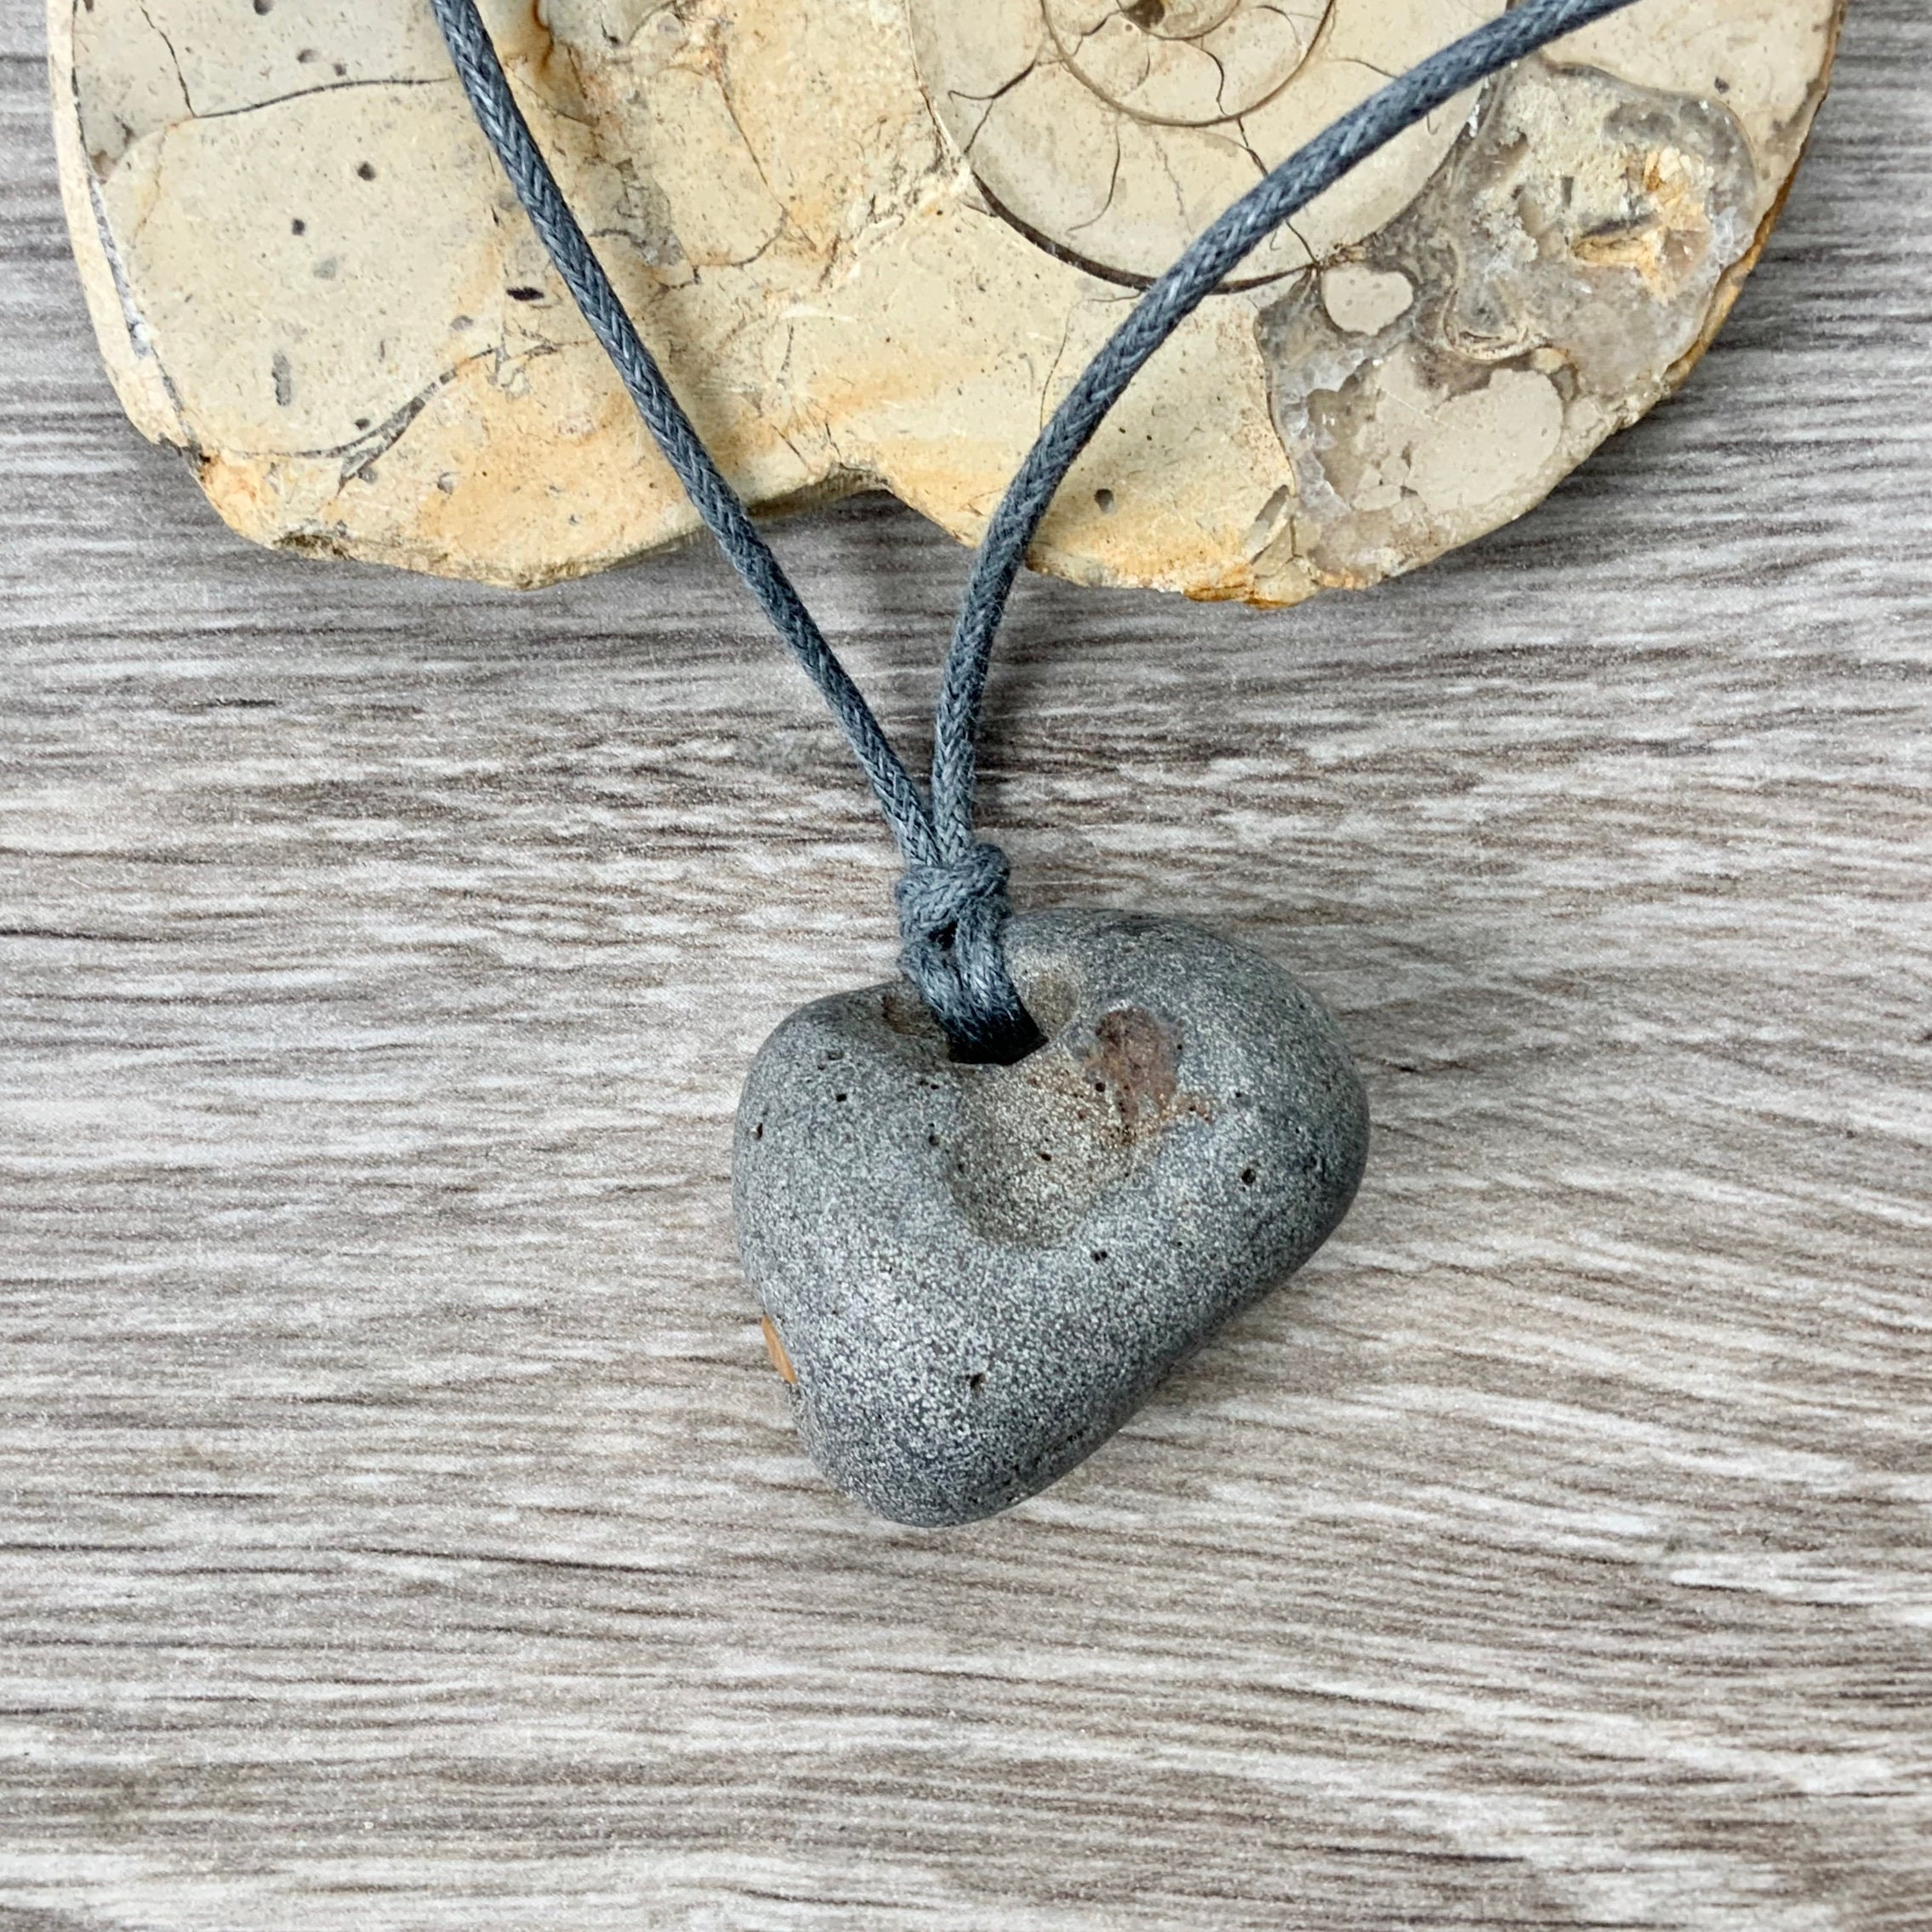 Hag Stone Pendant Raw Stone Necklace Beach Rock Jewellery Waxed Cotton Adjustable Cord Shop unique single stone necklaces from the world's best jewelry dealers. hag stone pendant raw stone necklace